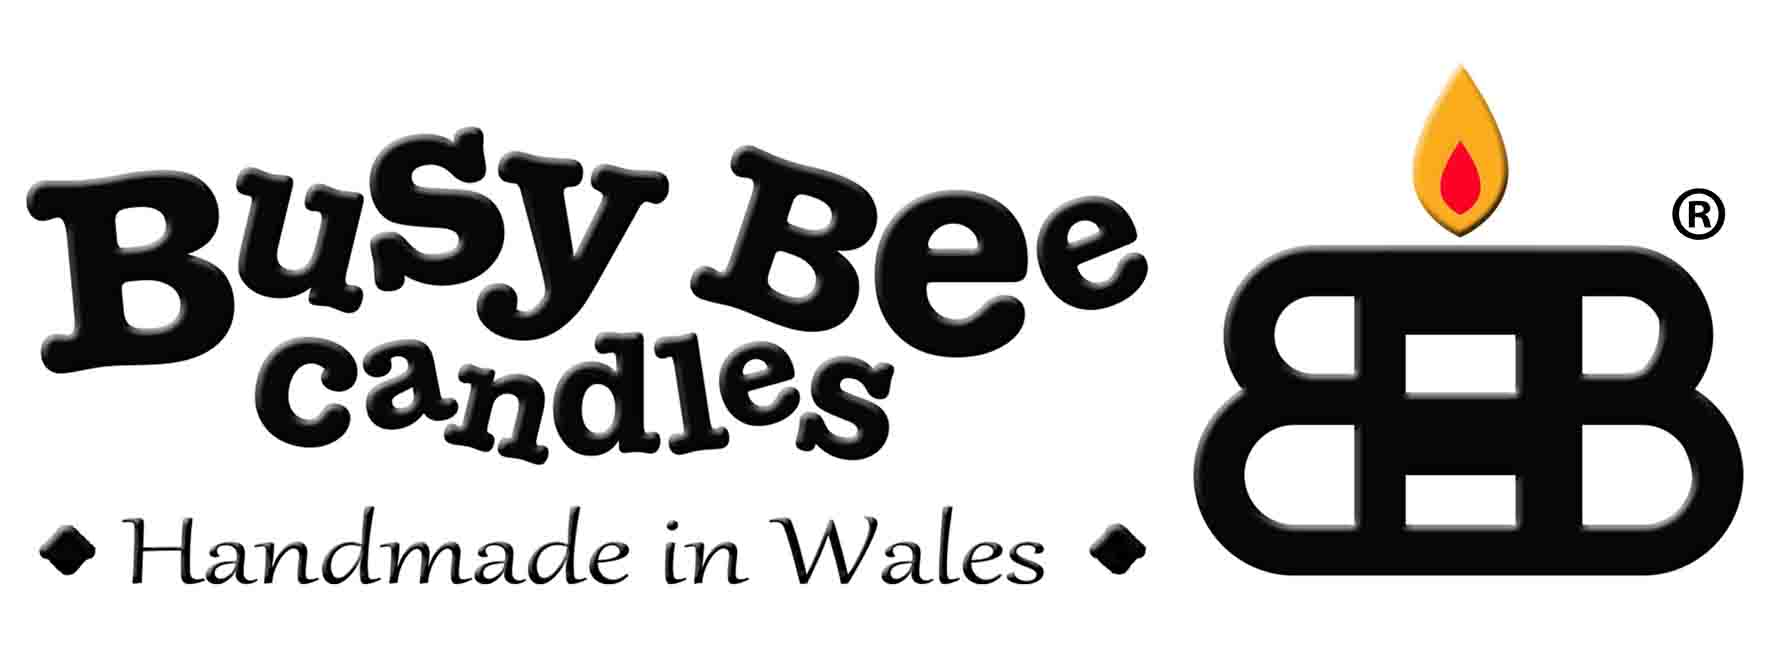 Busy Bee Candles